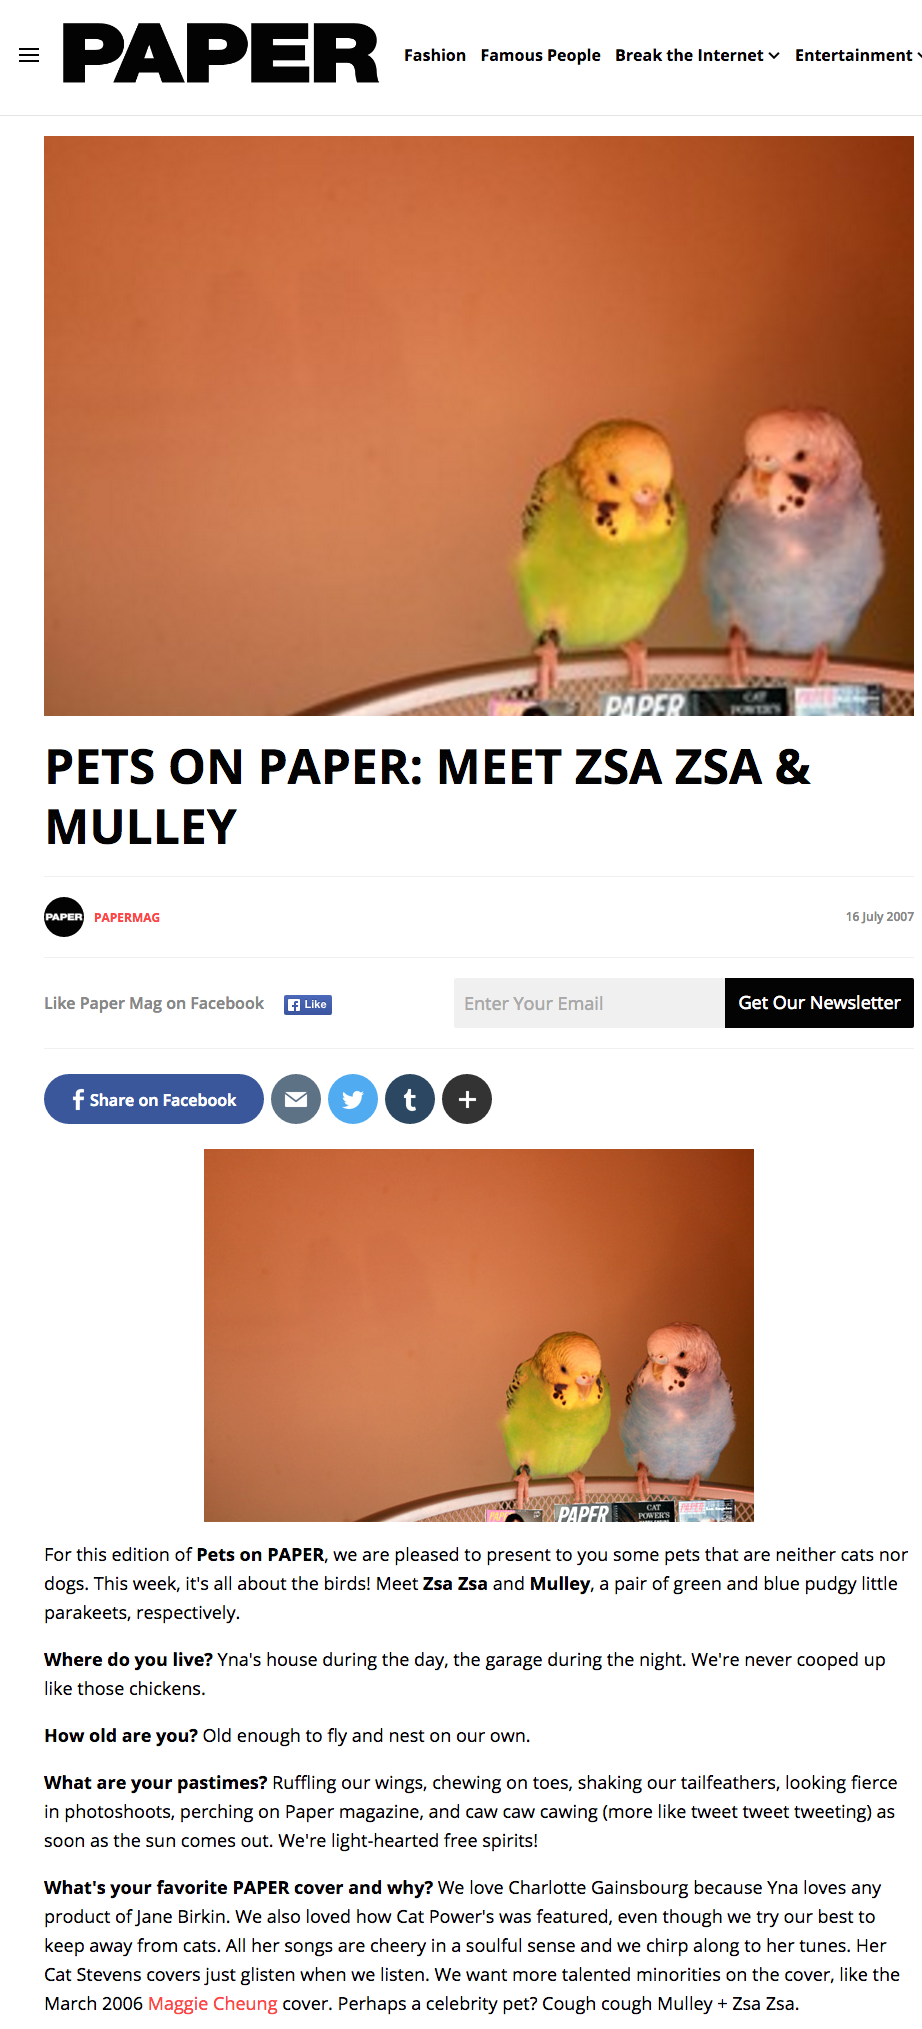 Pets on Paper: Meet Zsa Zsa & Mulley